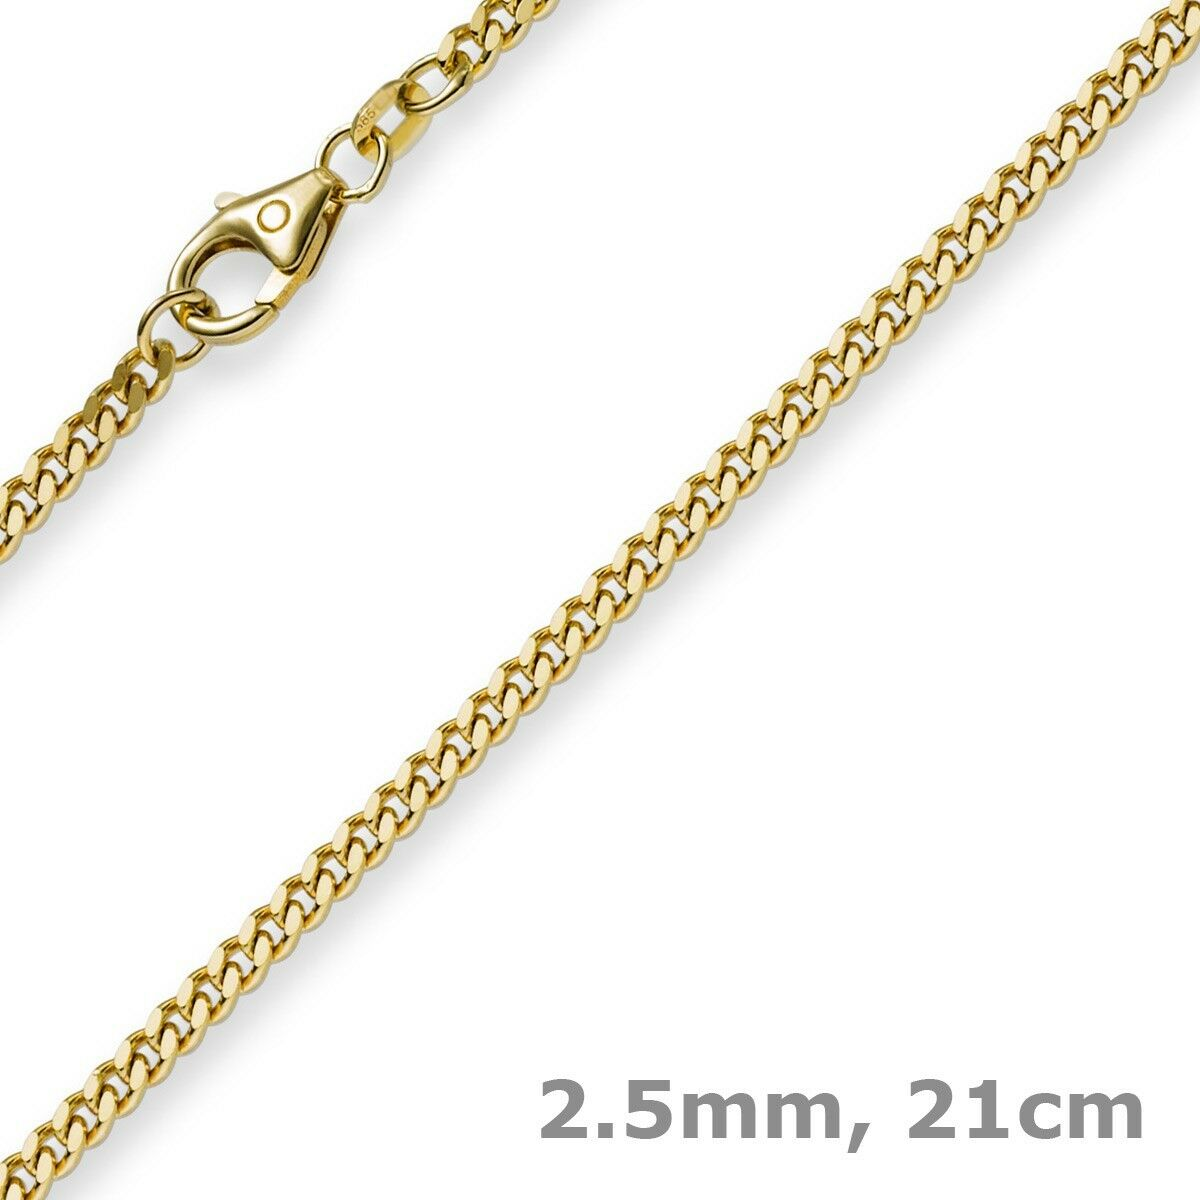 0 3 32in Curb Chain Bracelet Bracelet, 585 gold Yellow gold, 8 9 32In, Unisex